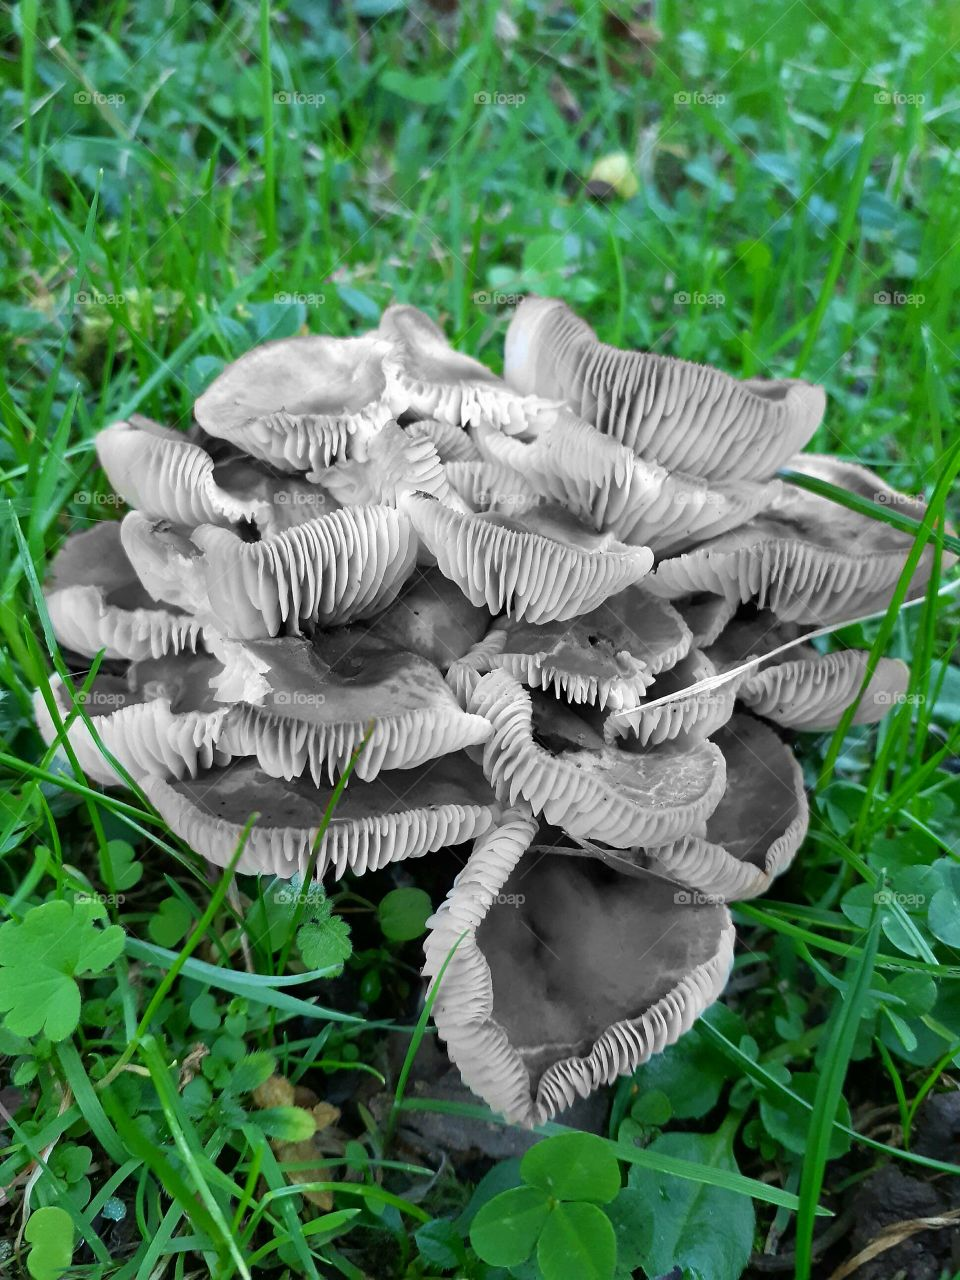 How they look like mushrooms with no color compared to green grass??